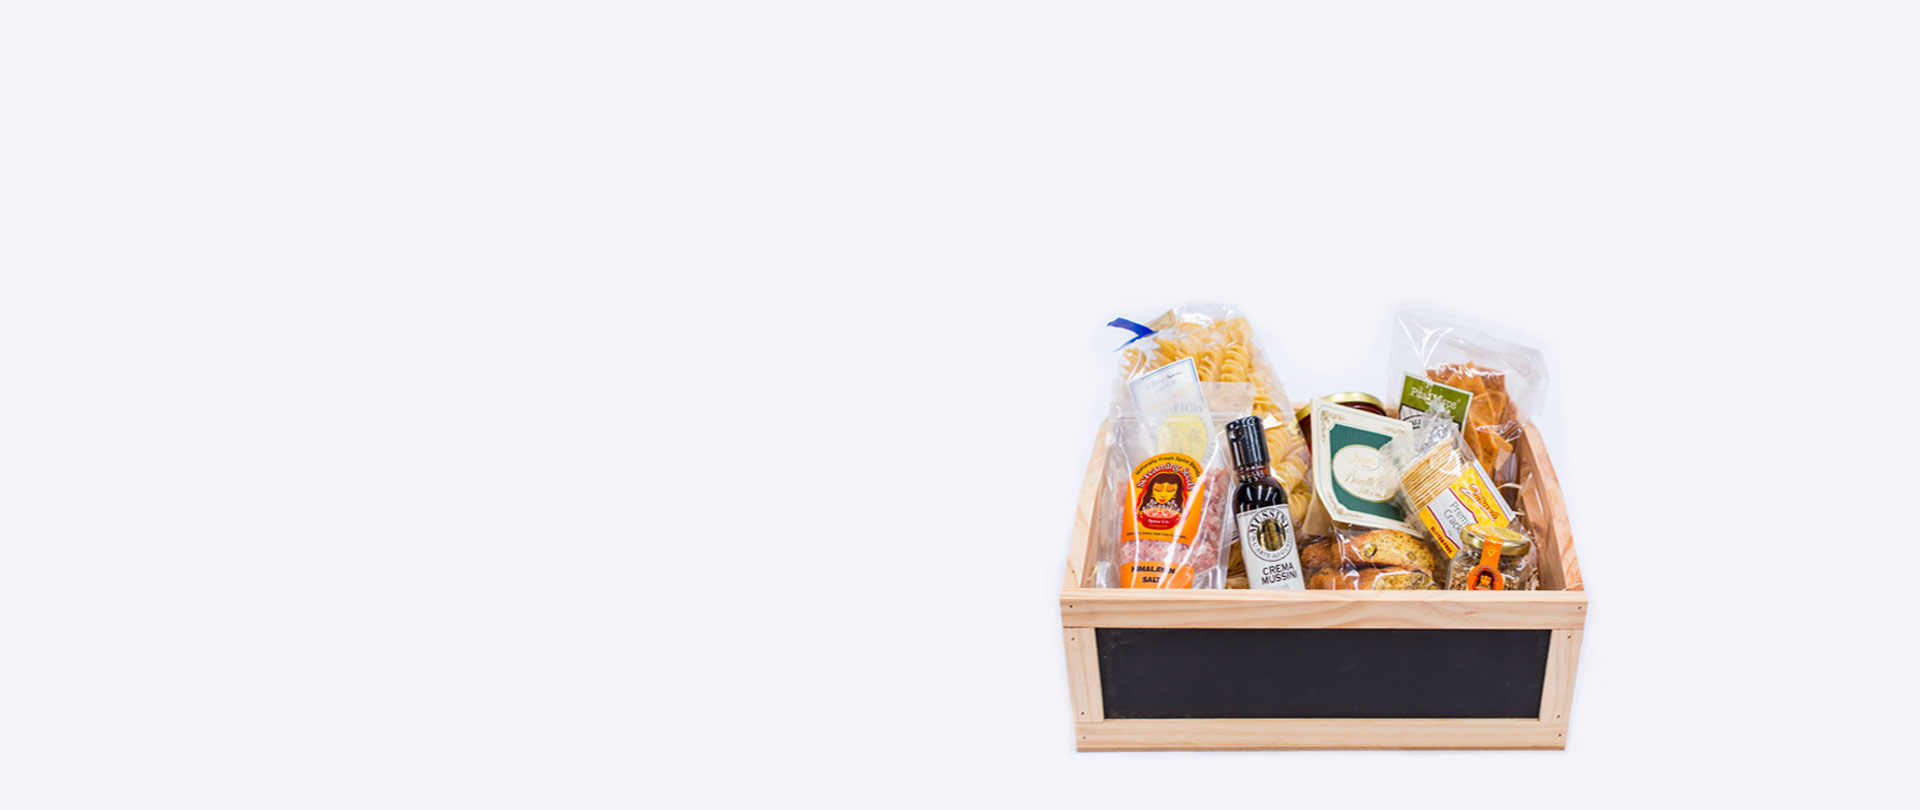 Timber hampers